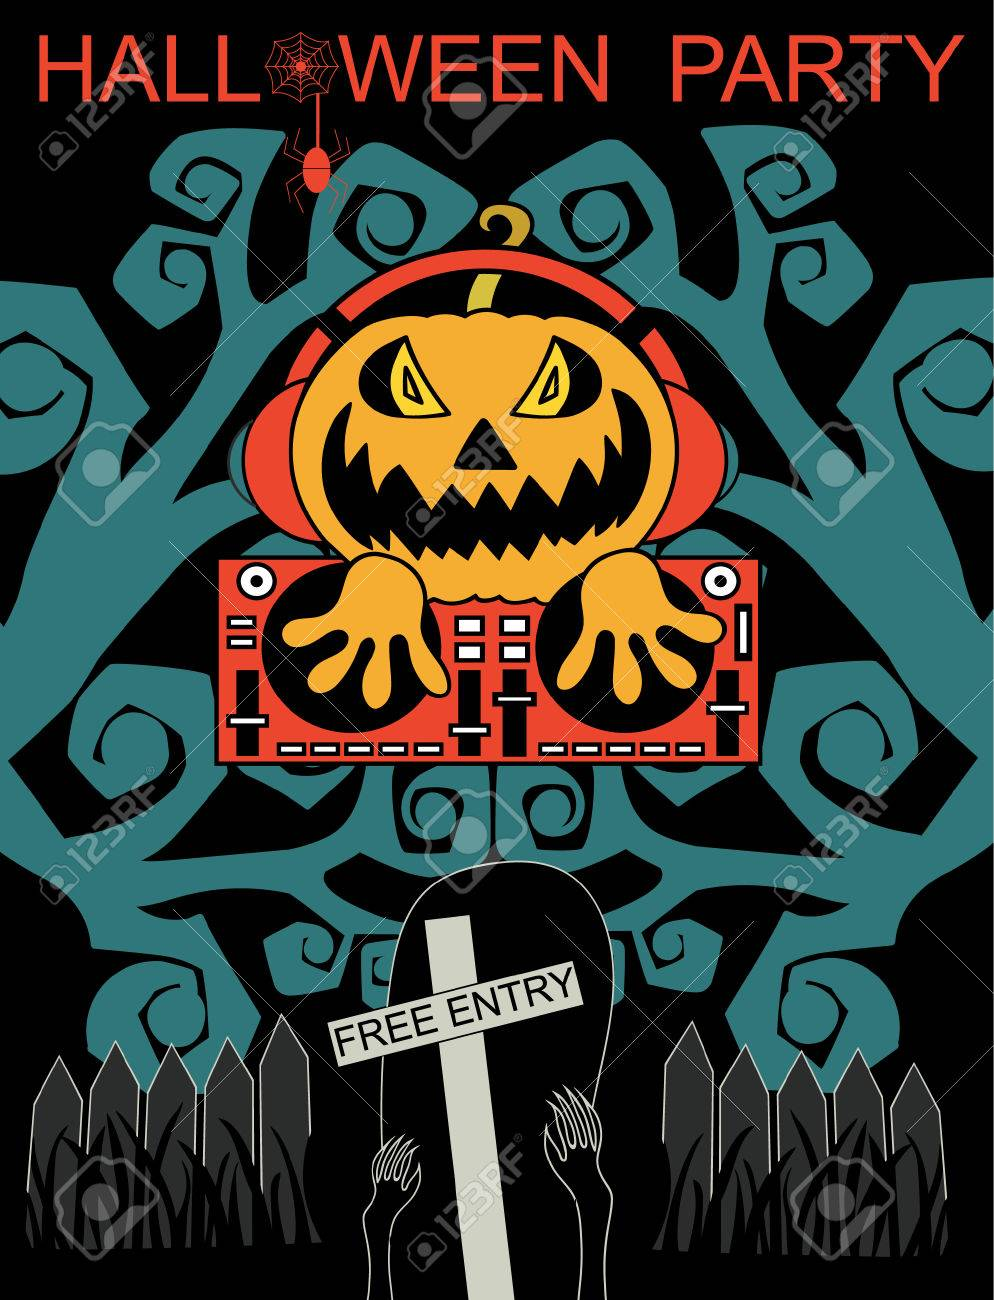 Halloween Party Design Template With Dj Pumpkin And Place For ...